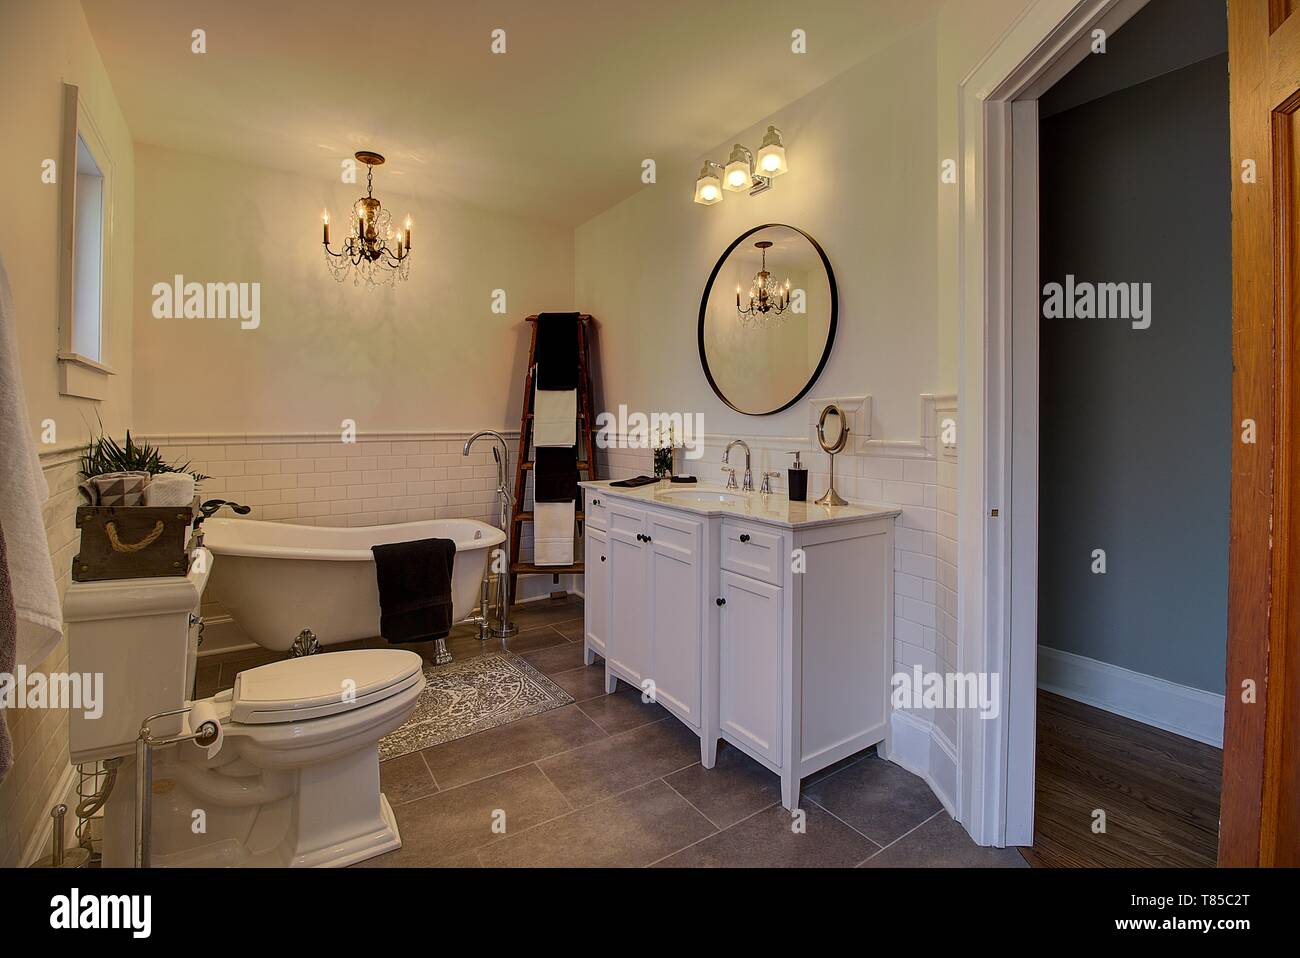 Home improvements. Claw foot tub modern cabinetry and subway tile floor to ceiling walls. - Stock Image